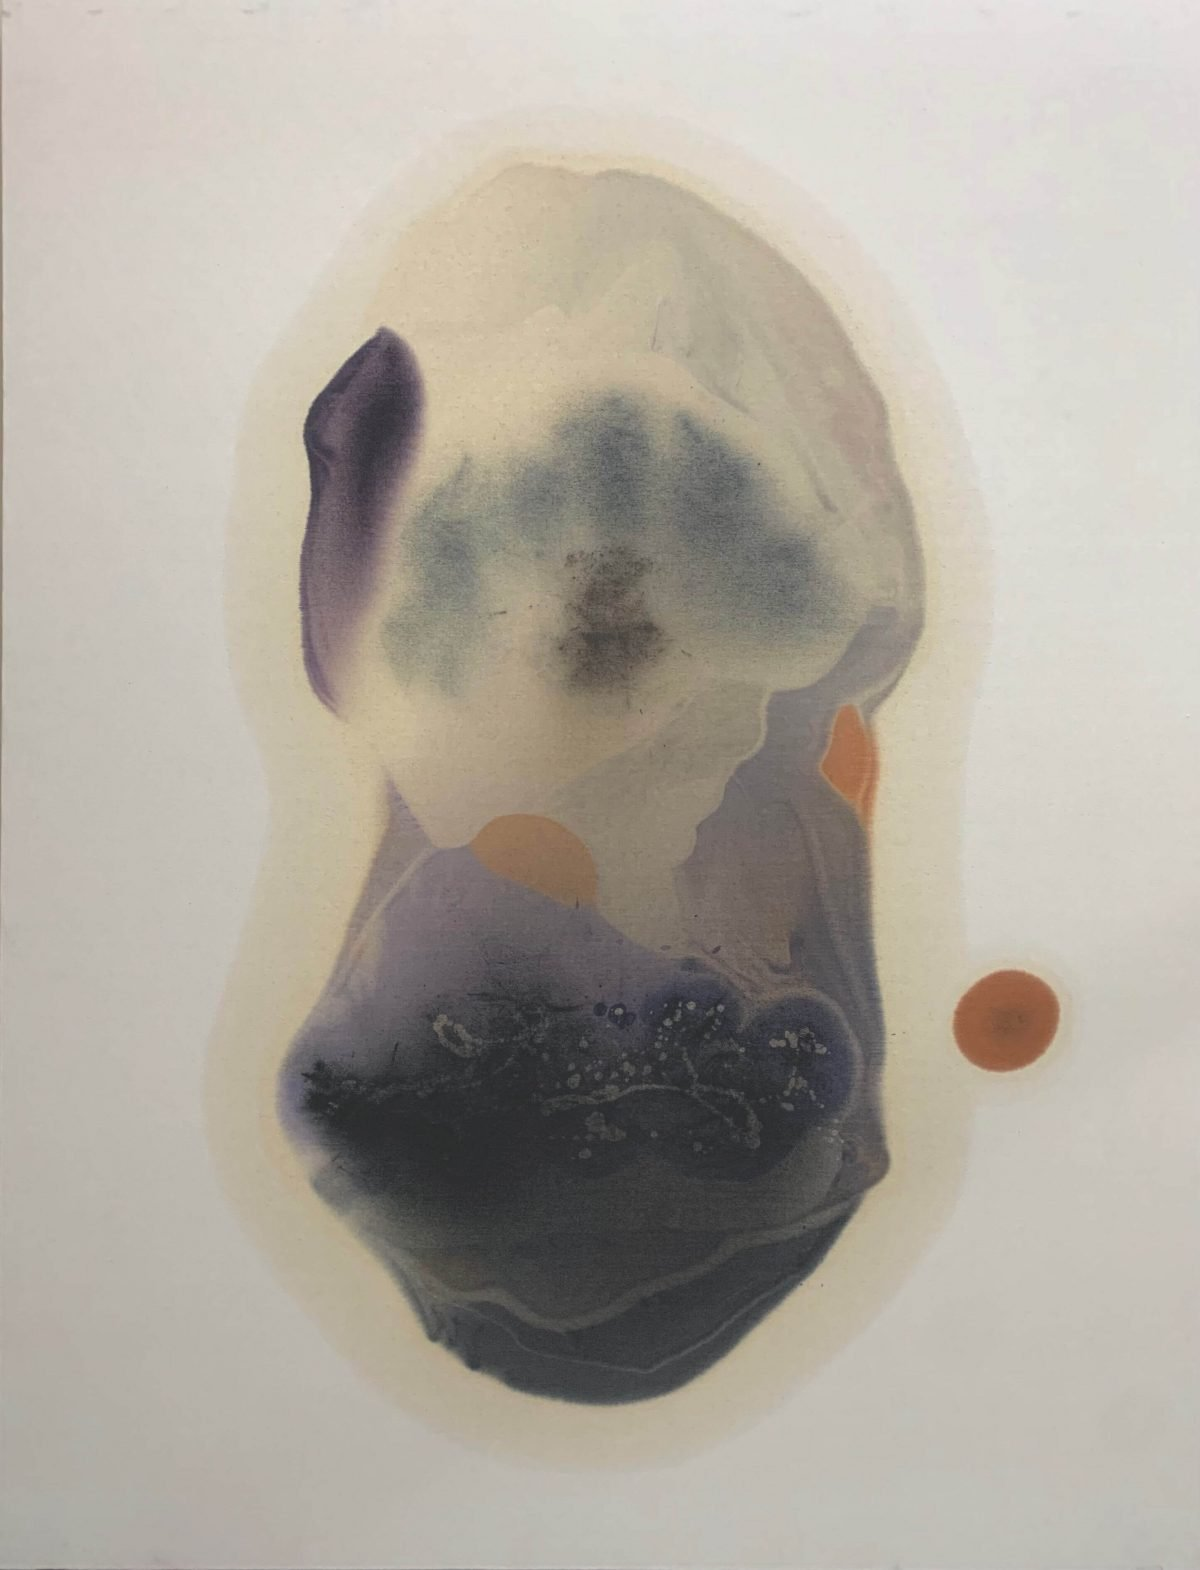 Rahul Inamdar, Untitled, oil on canvas, 78 x 60 in, 2021